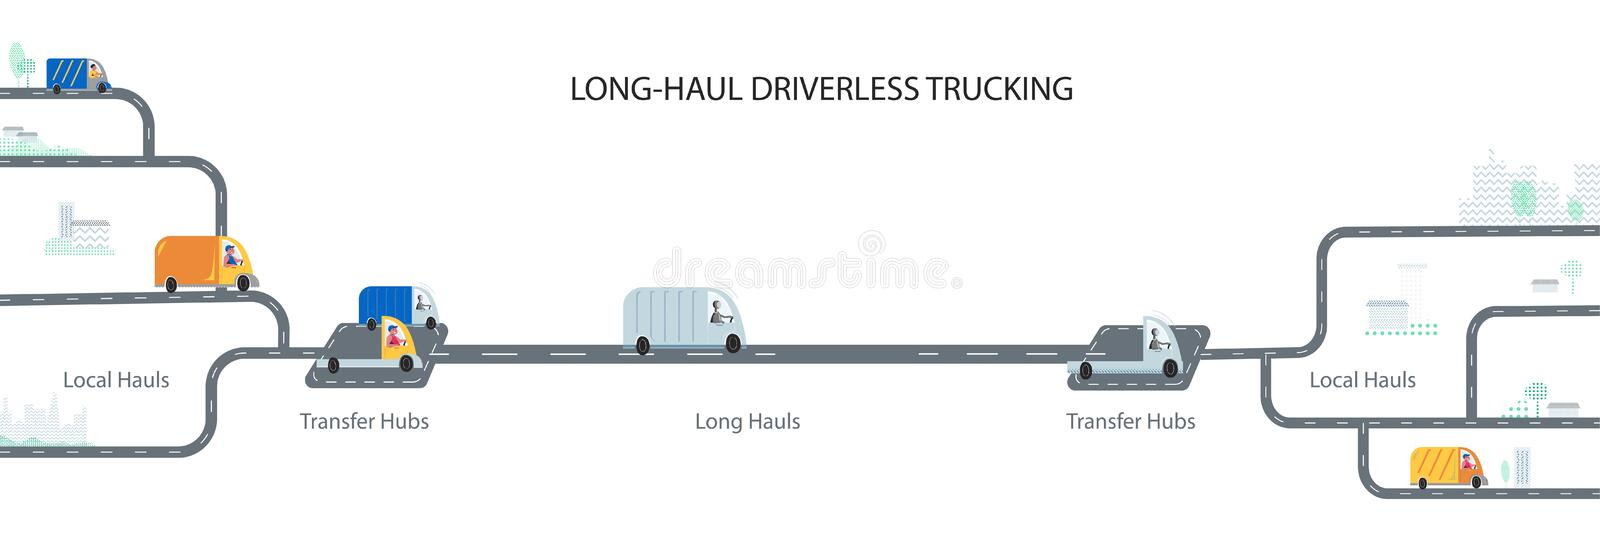 Automation in the long hauls vector illustration